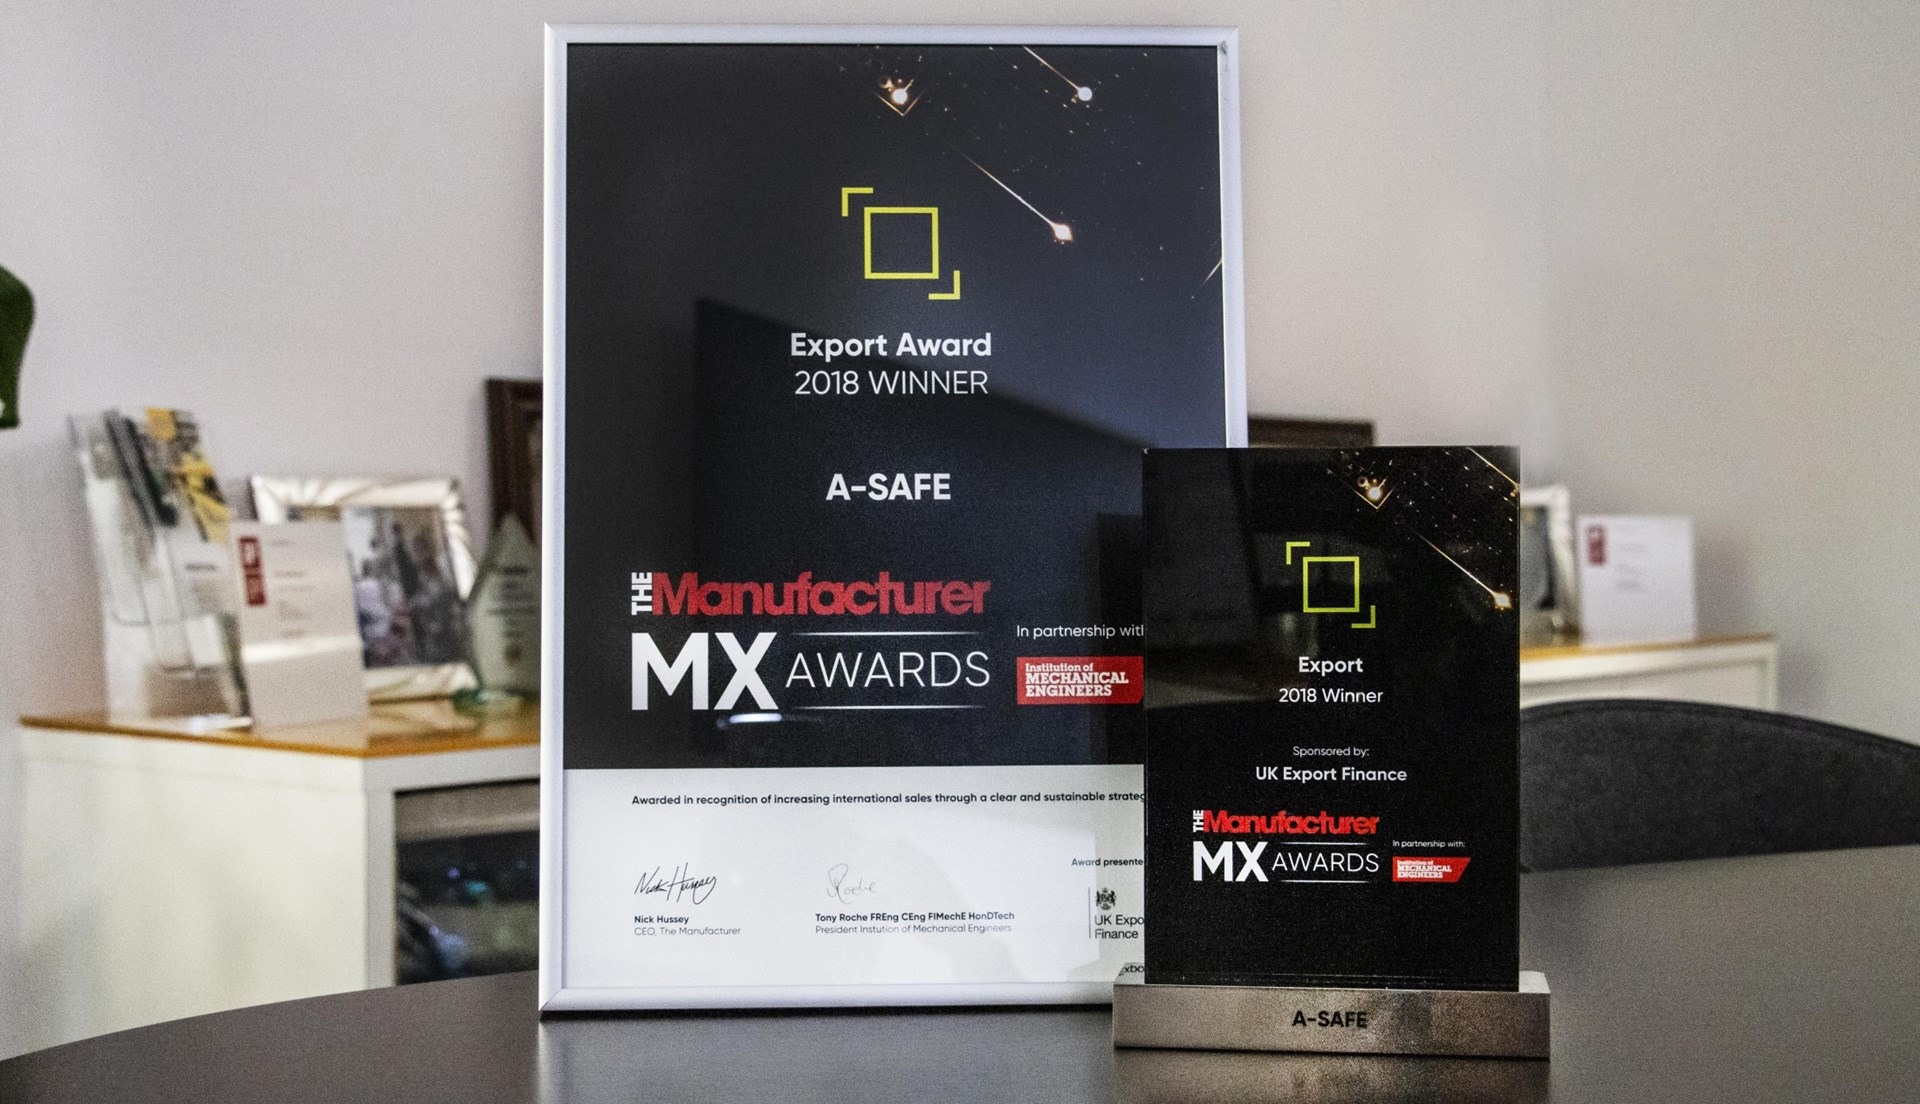 TMMX Award A-SAFE Manufacturing Award 1156 x 556.jpg